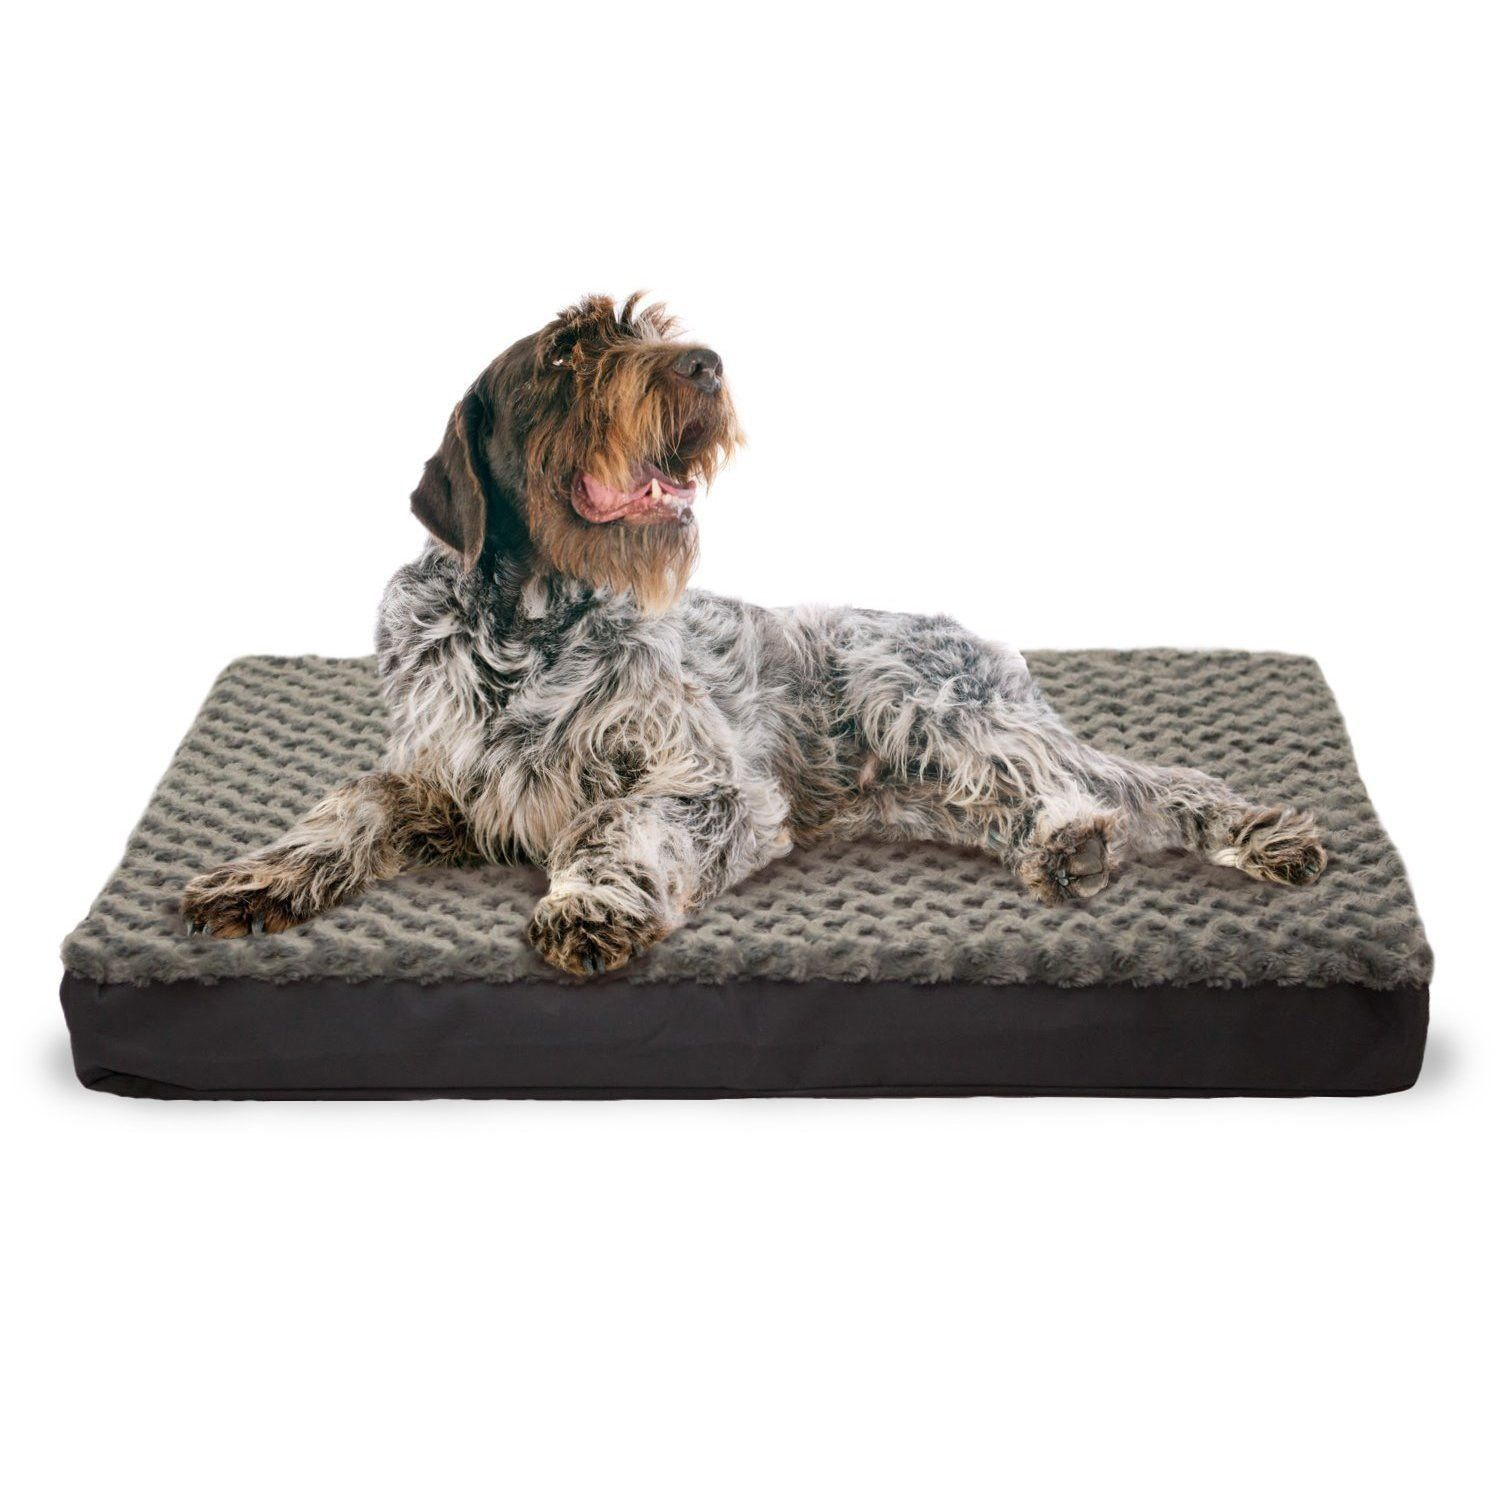 Furhaven Dog Ultra Plush Deluxe Cooling Gel Memory